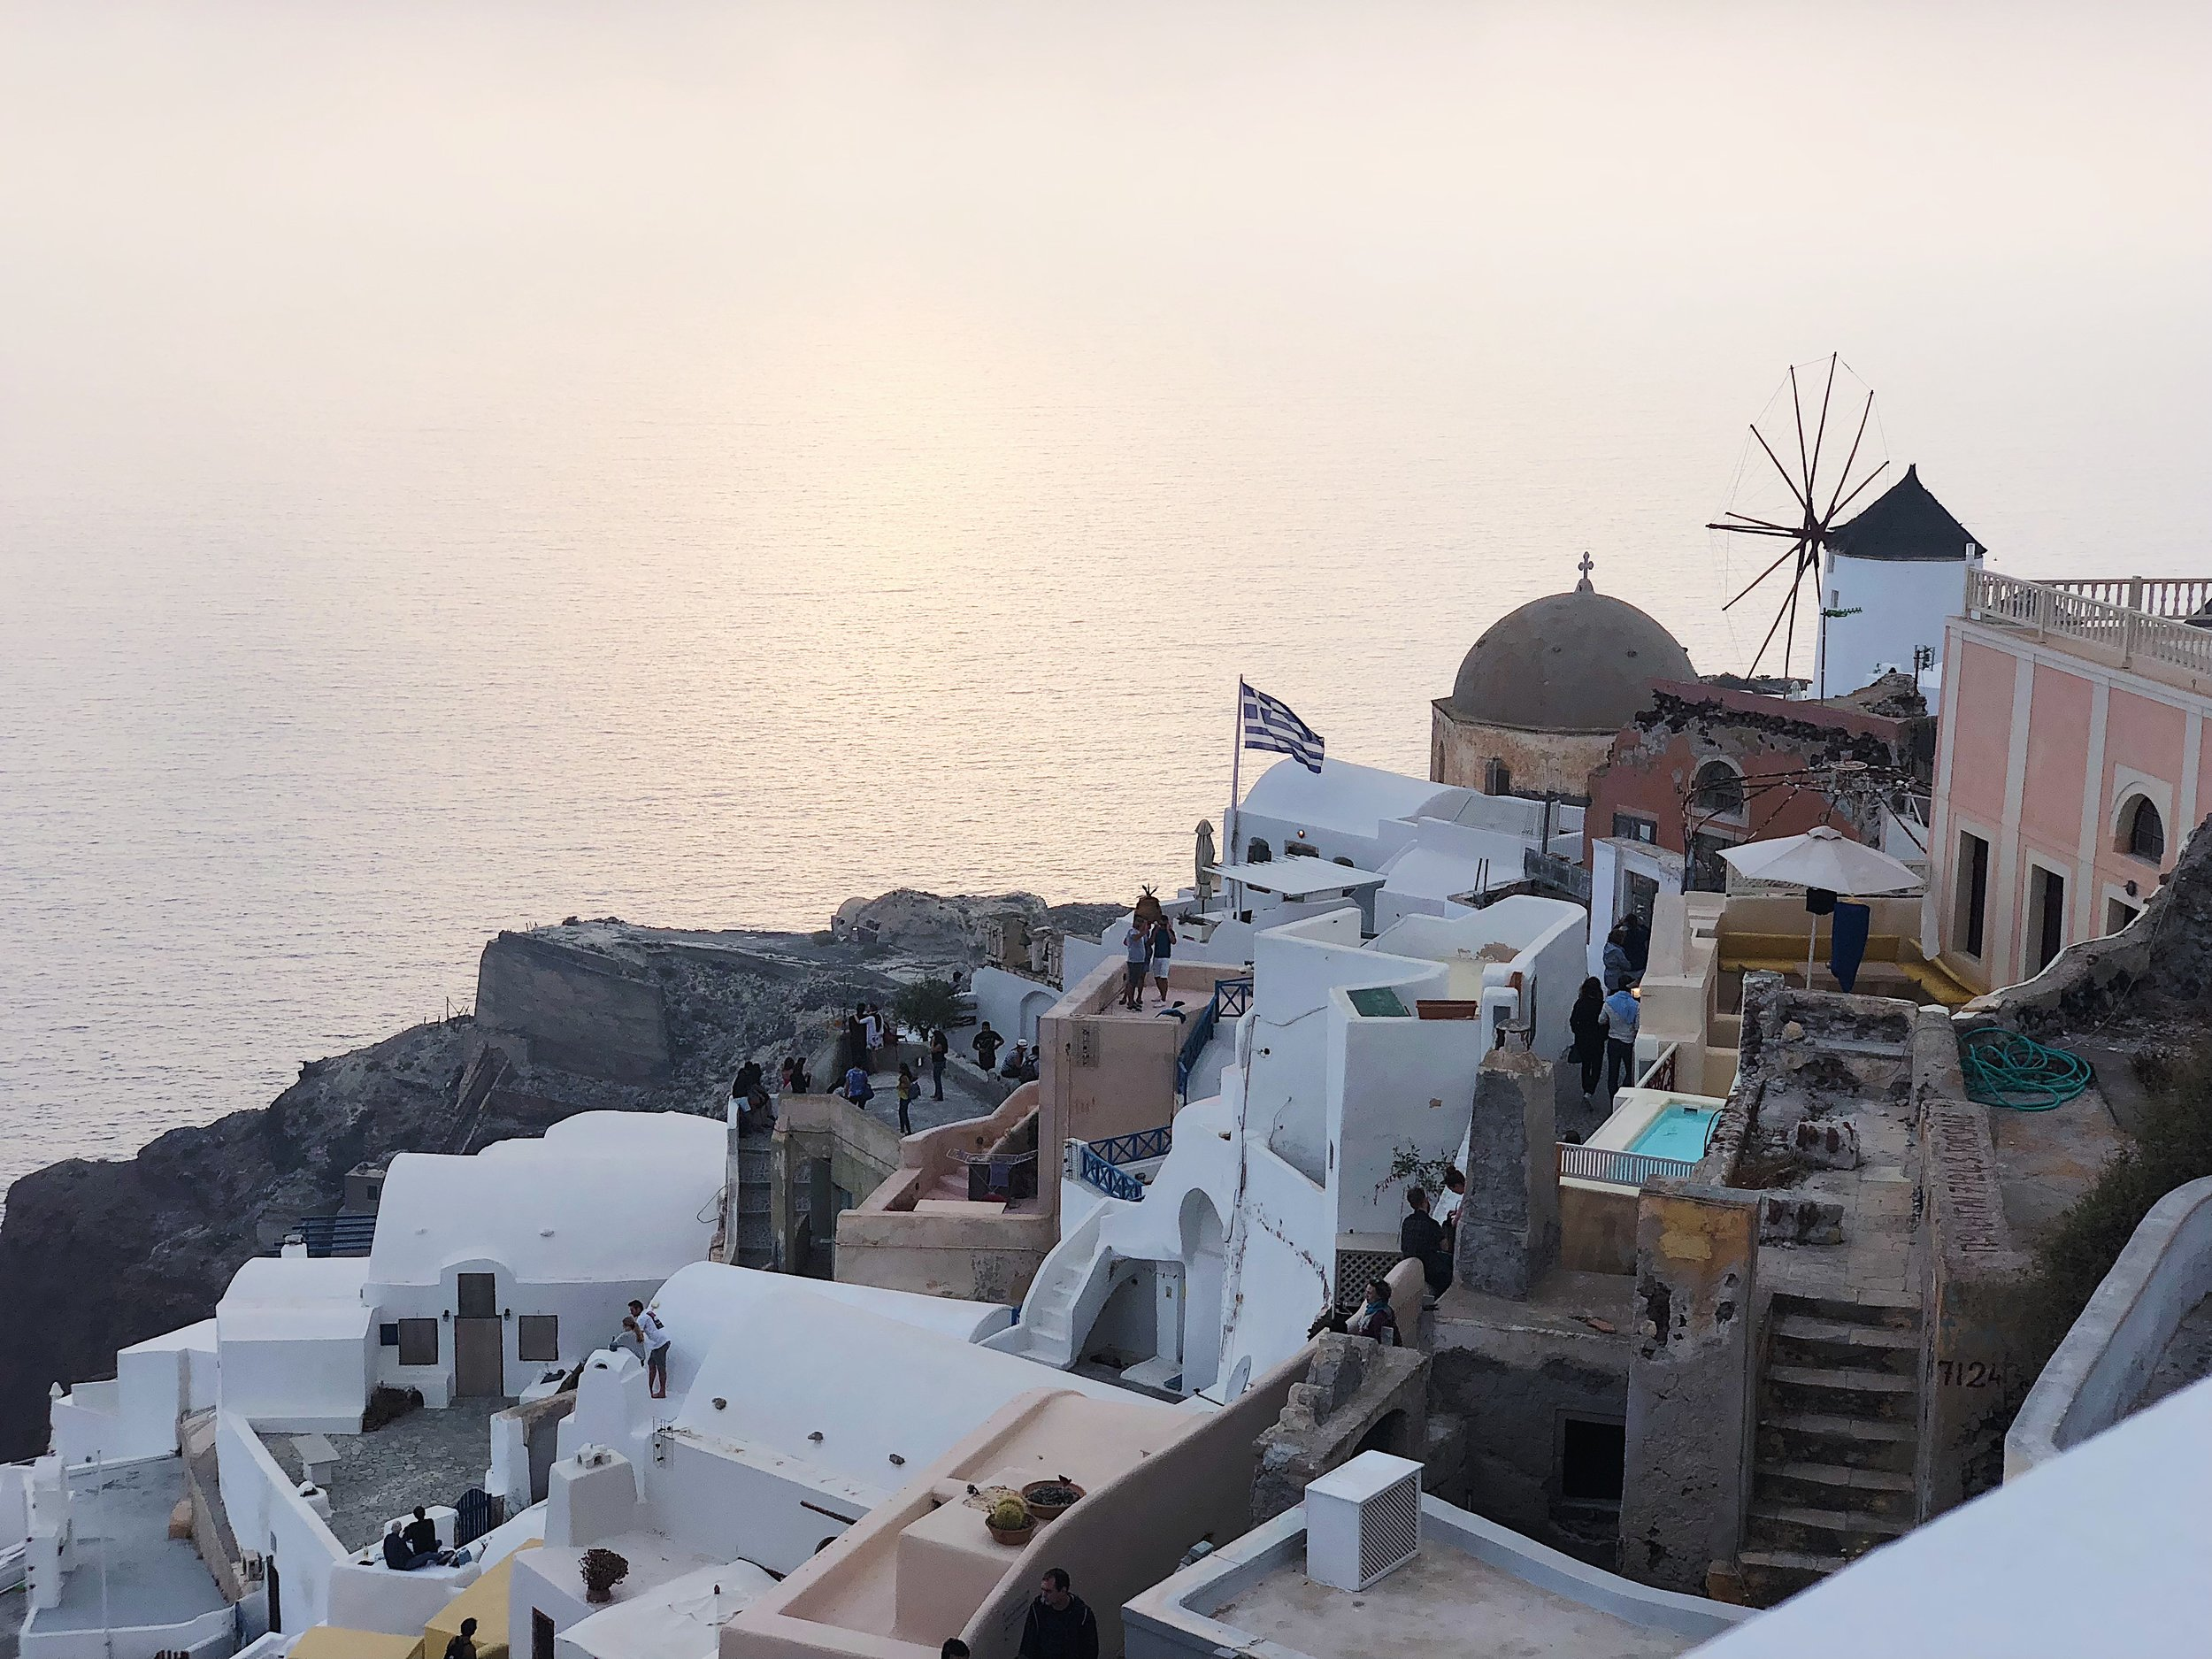 A foggy sunset seen from the Sunset Café in Oia